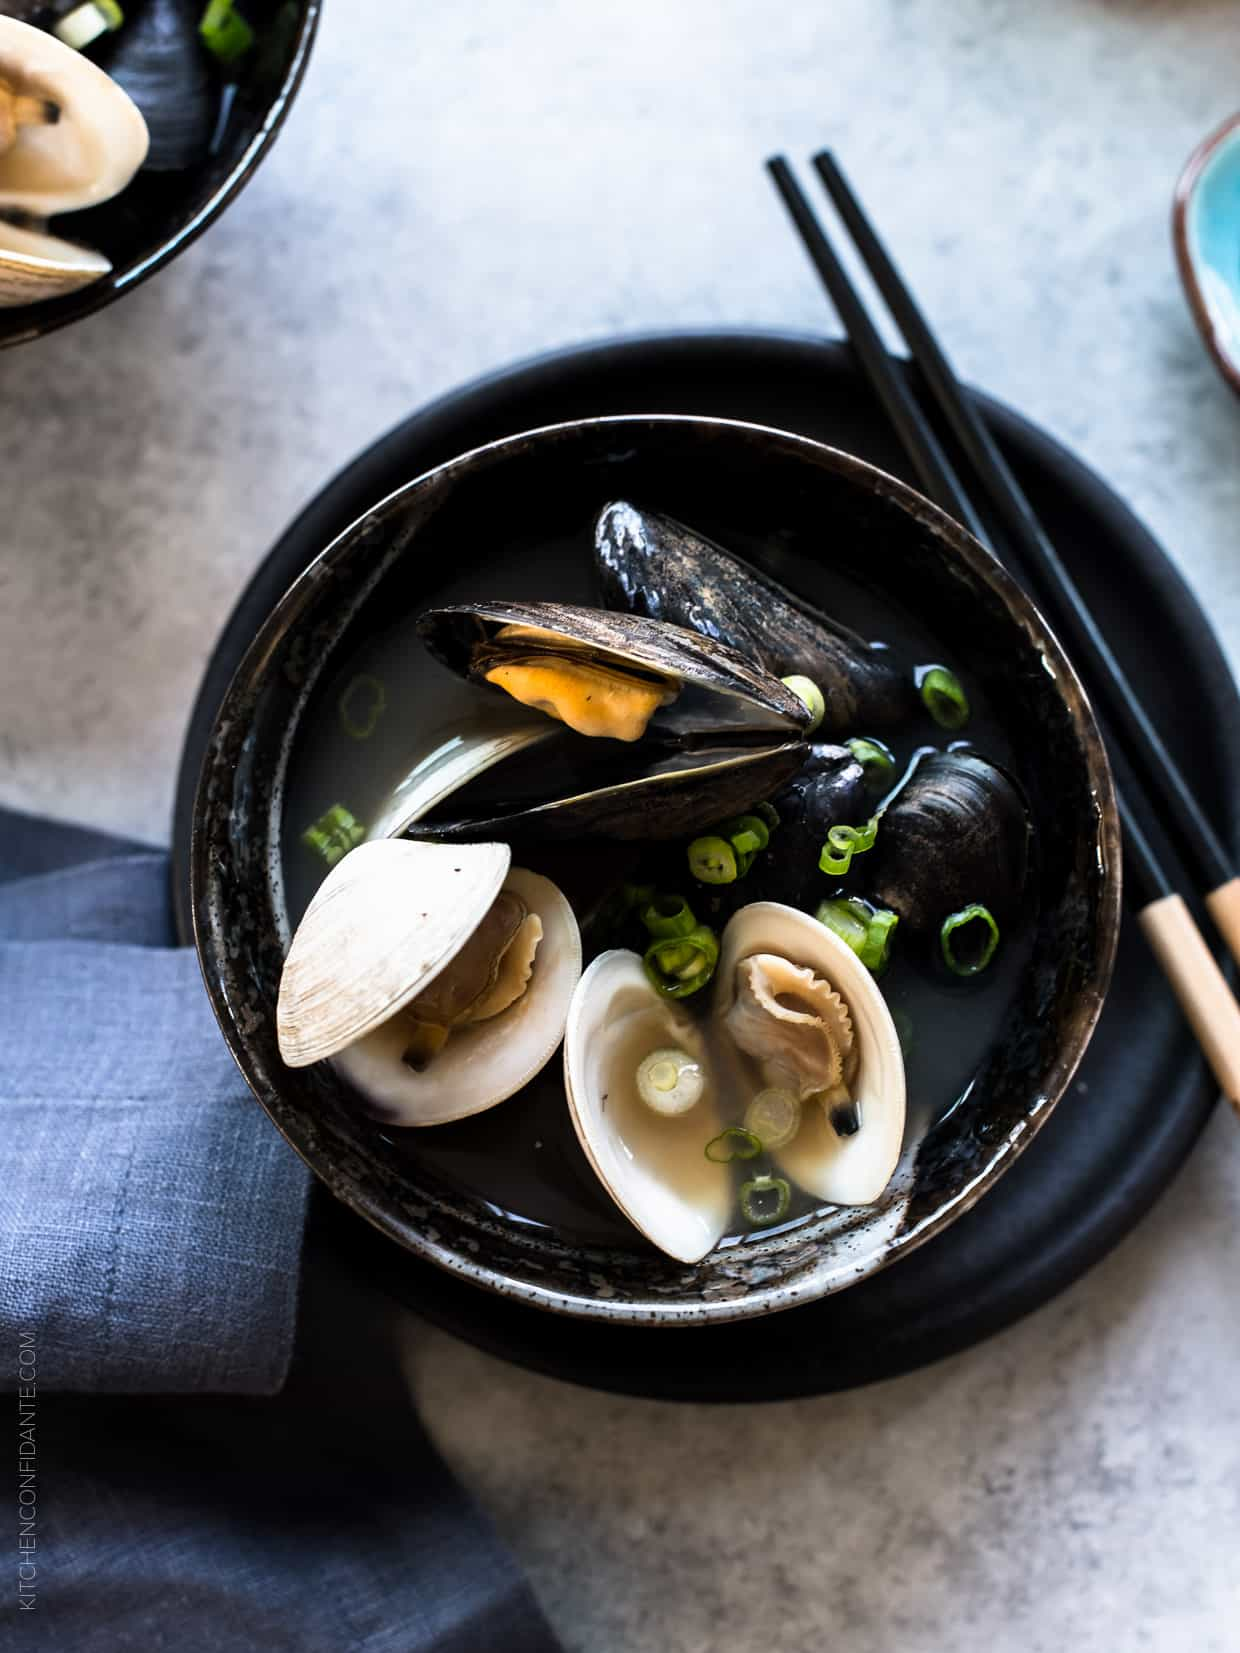 Clams and mussels opened in a bowl of Clam and Mussel Miso Soup.